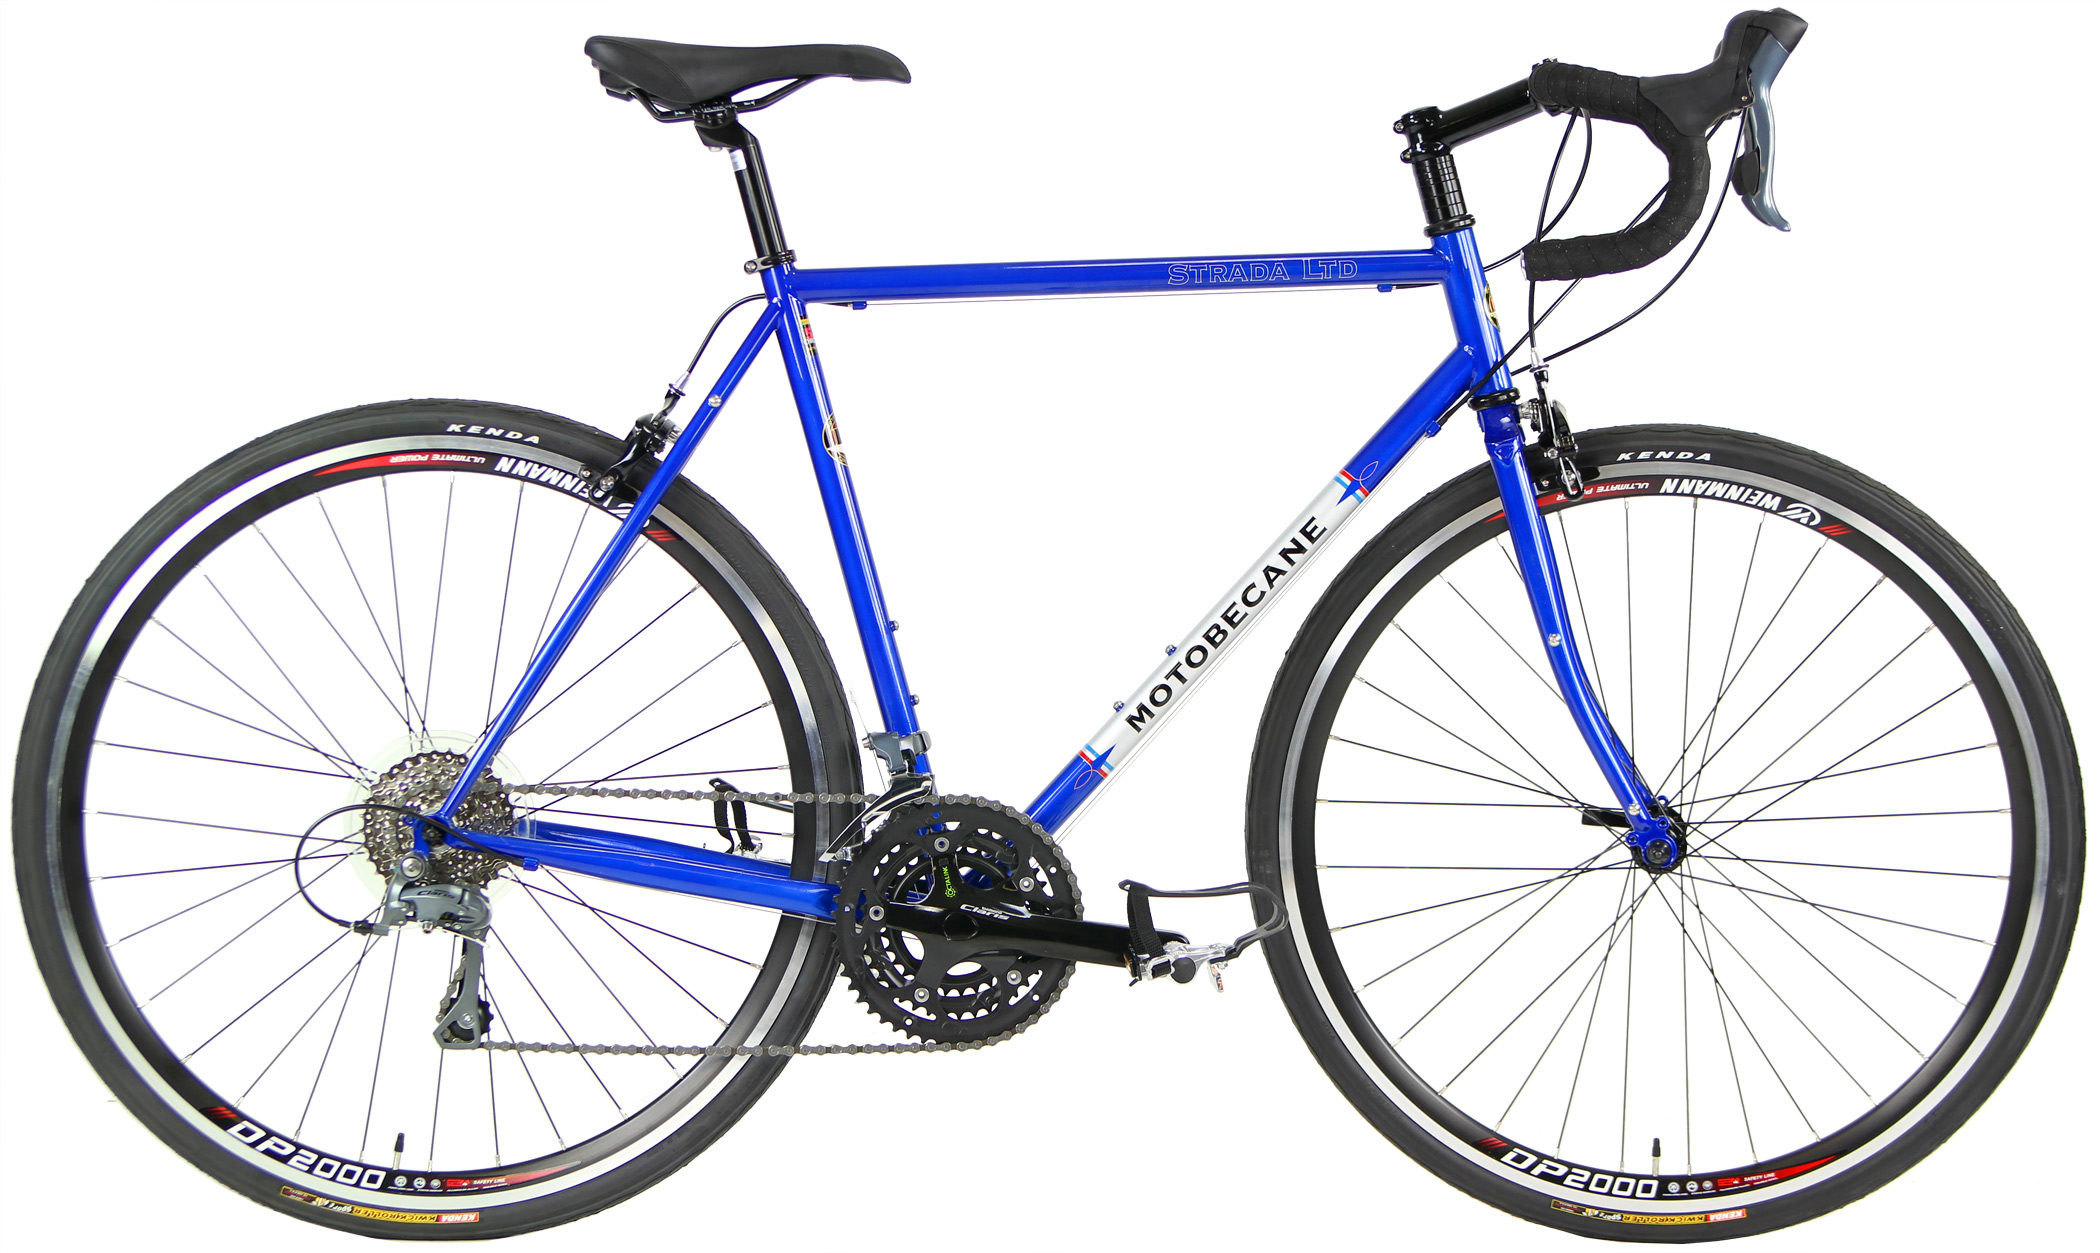 Bikes Motobecane Strada LTD 1.0 Reynolds Chromoly Steel Road Bike Image